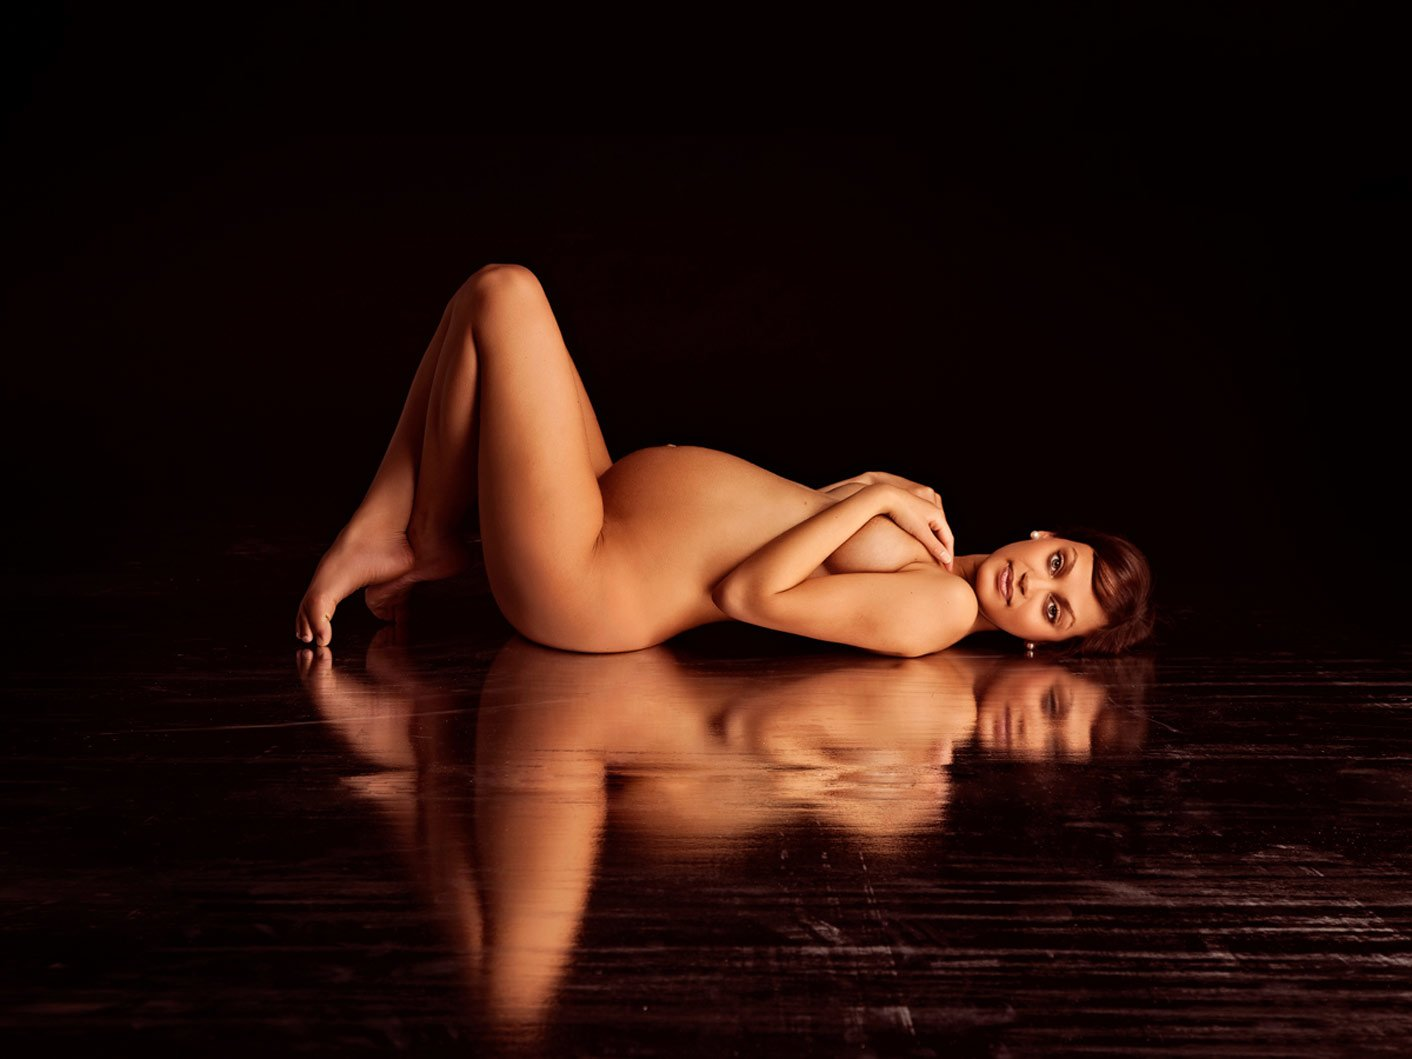 Fine art and Nude artistic pregnancy photos 1